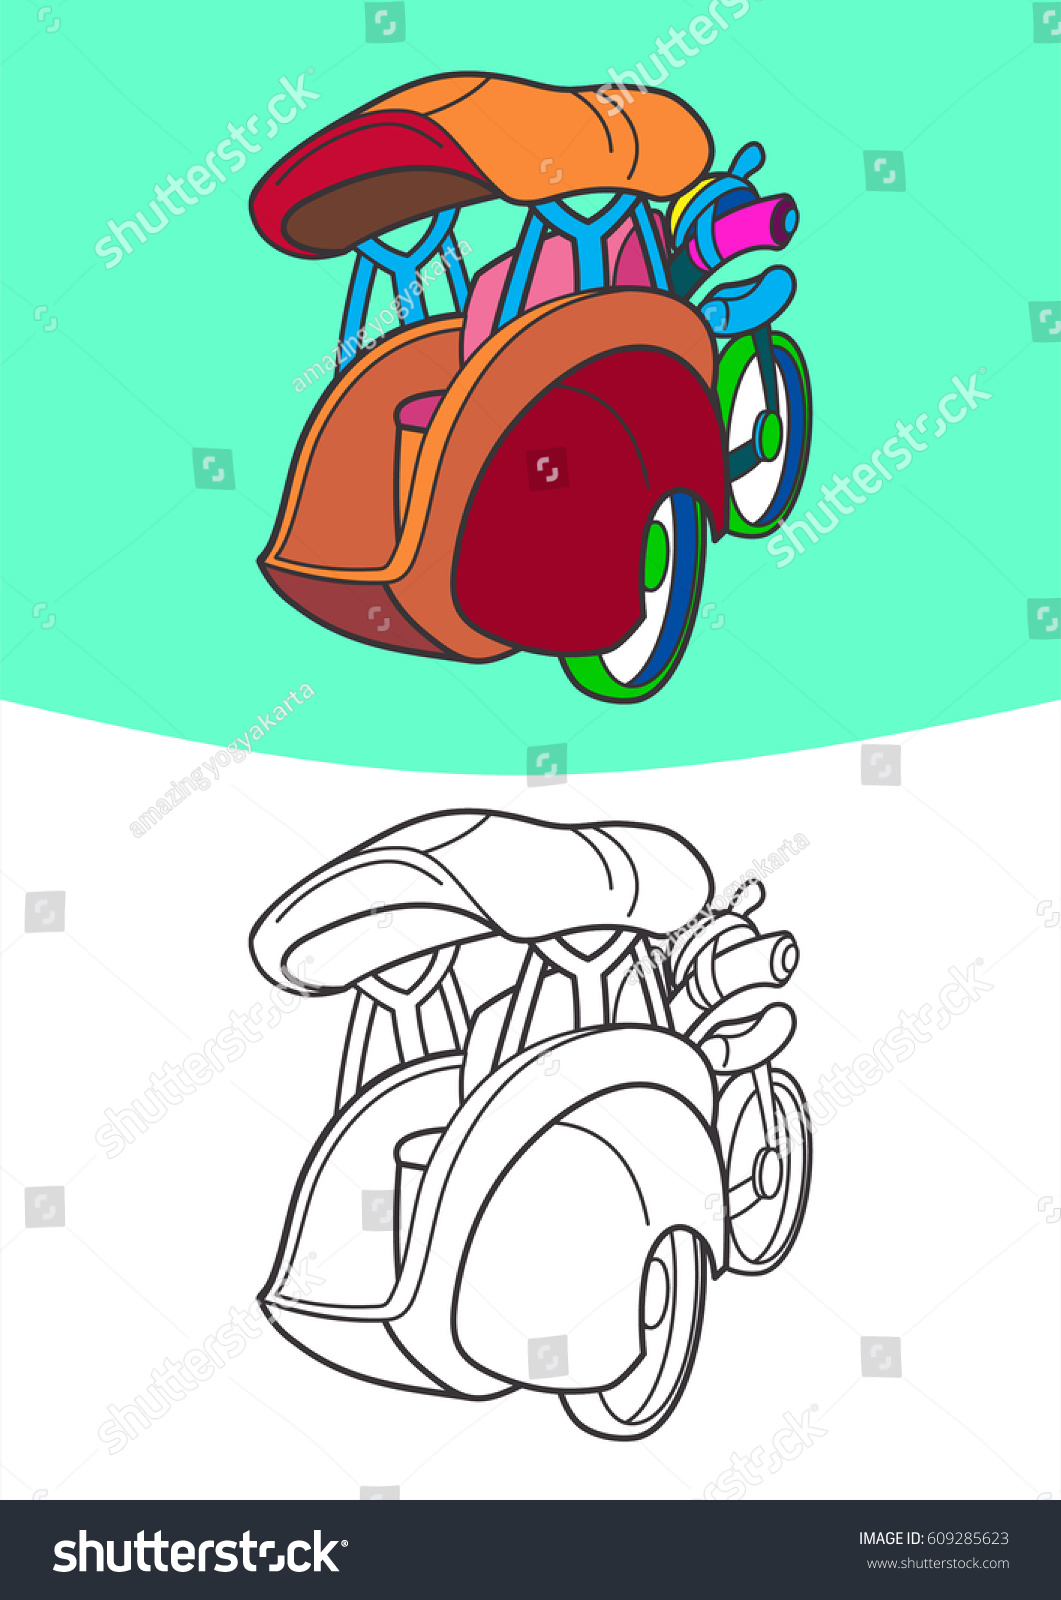 coloring vehicle children transportation illustration kids stock